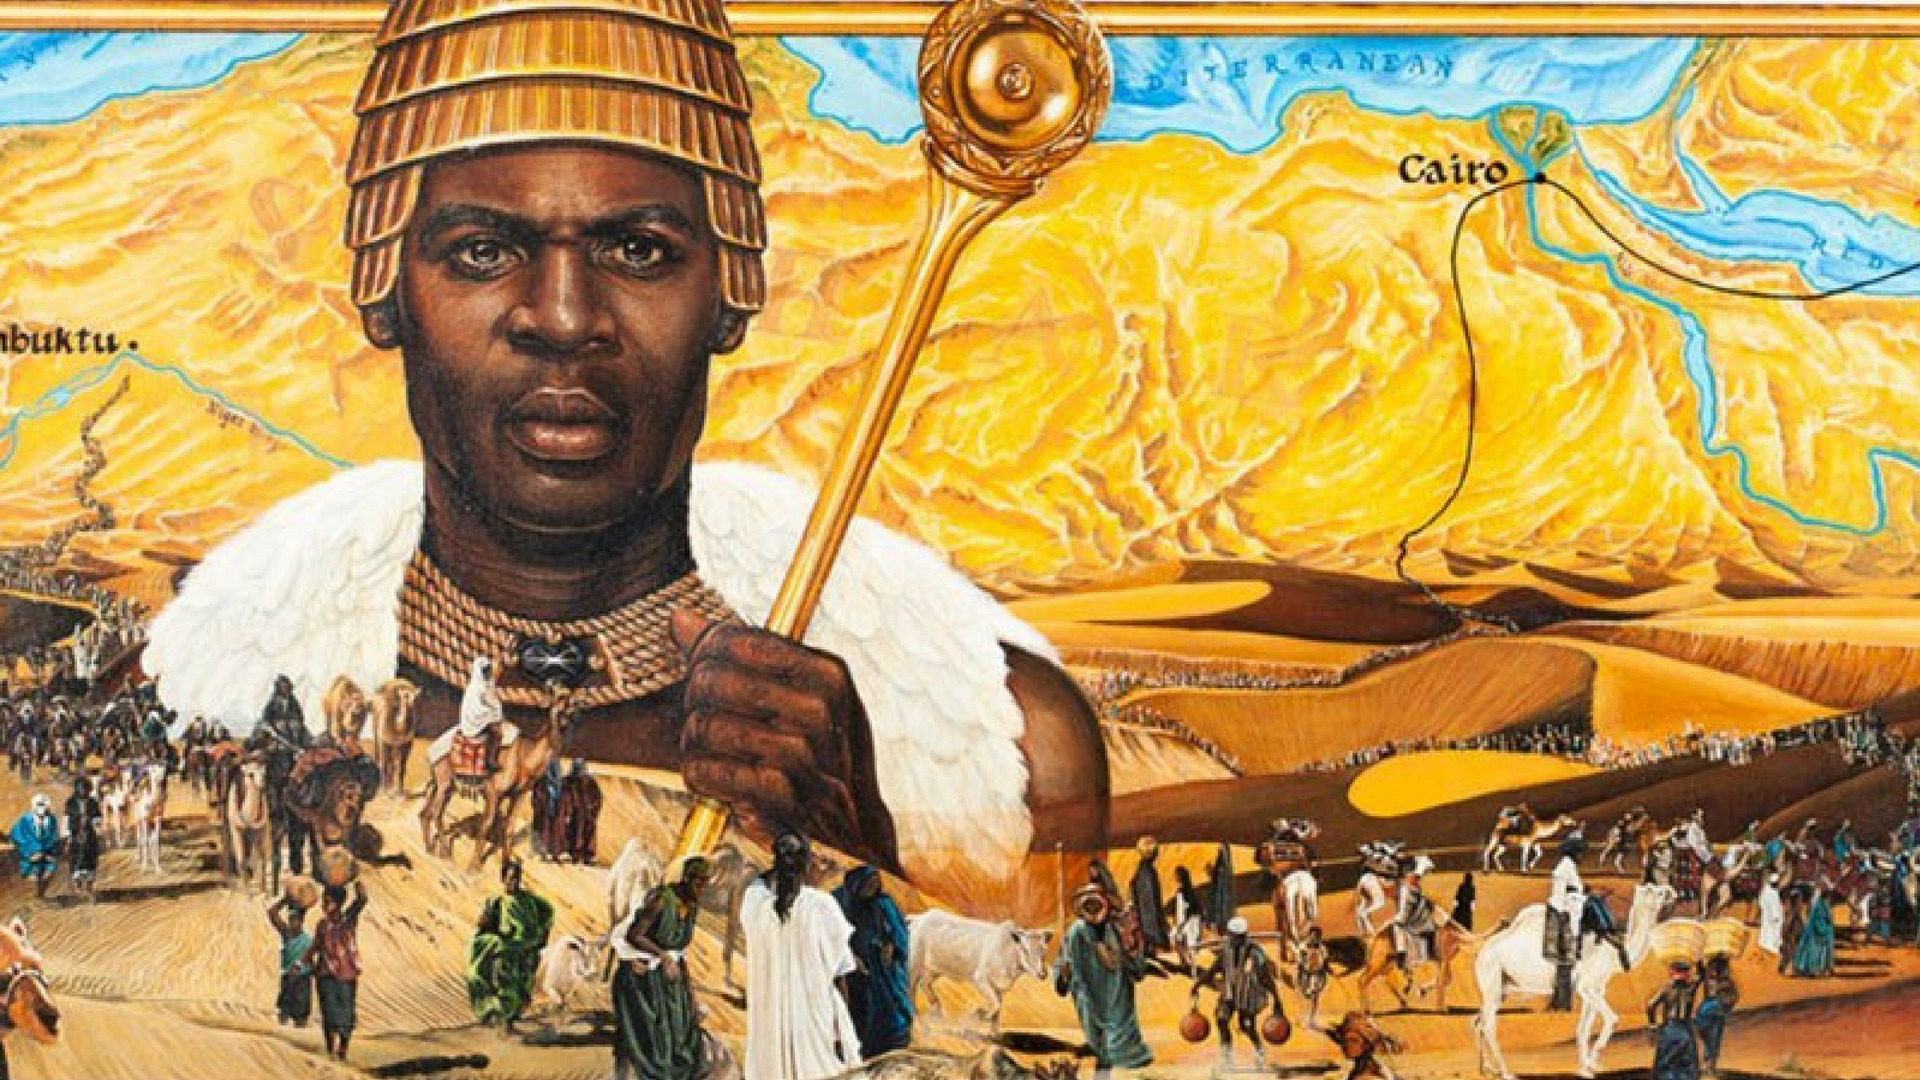 Mansa Musa – The Richest Man That Ever Lived